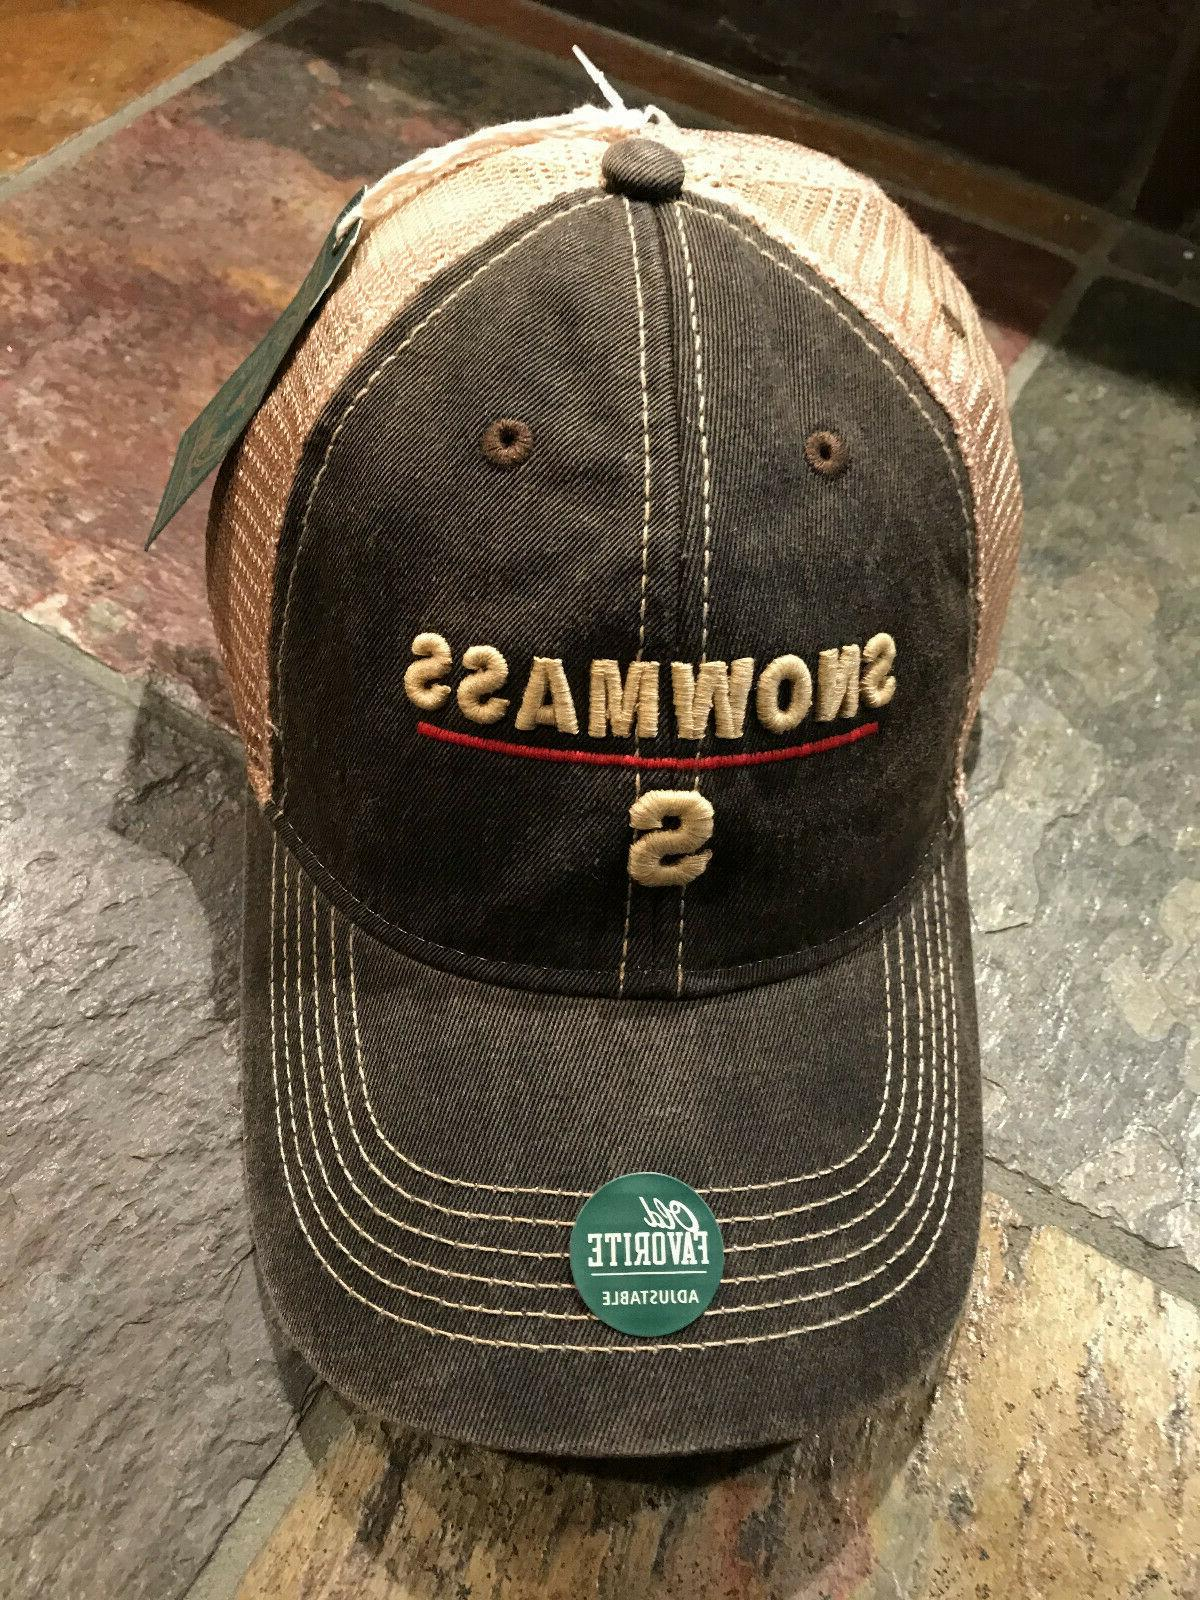 hat cap snowmass colorado relaxed vintage twill